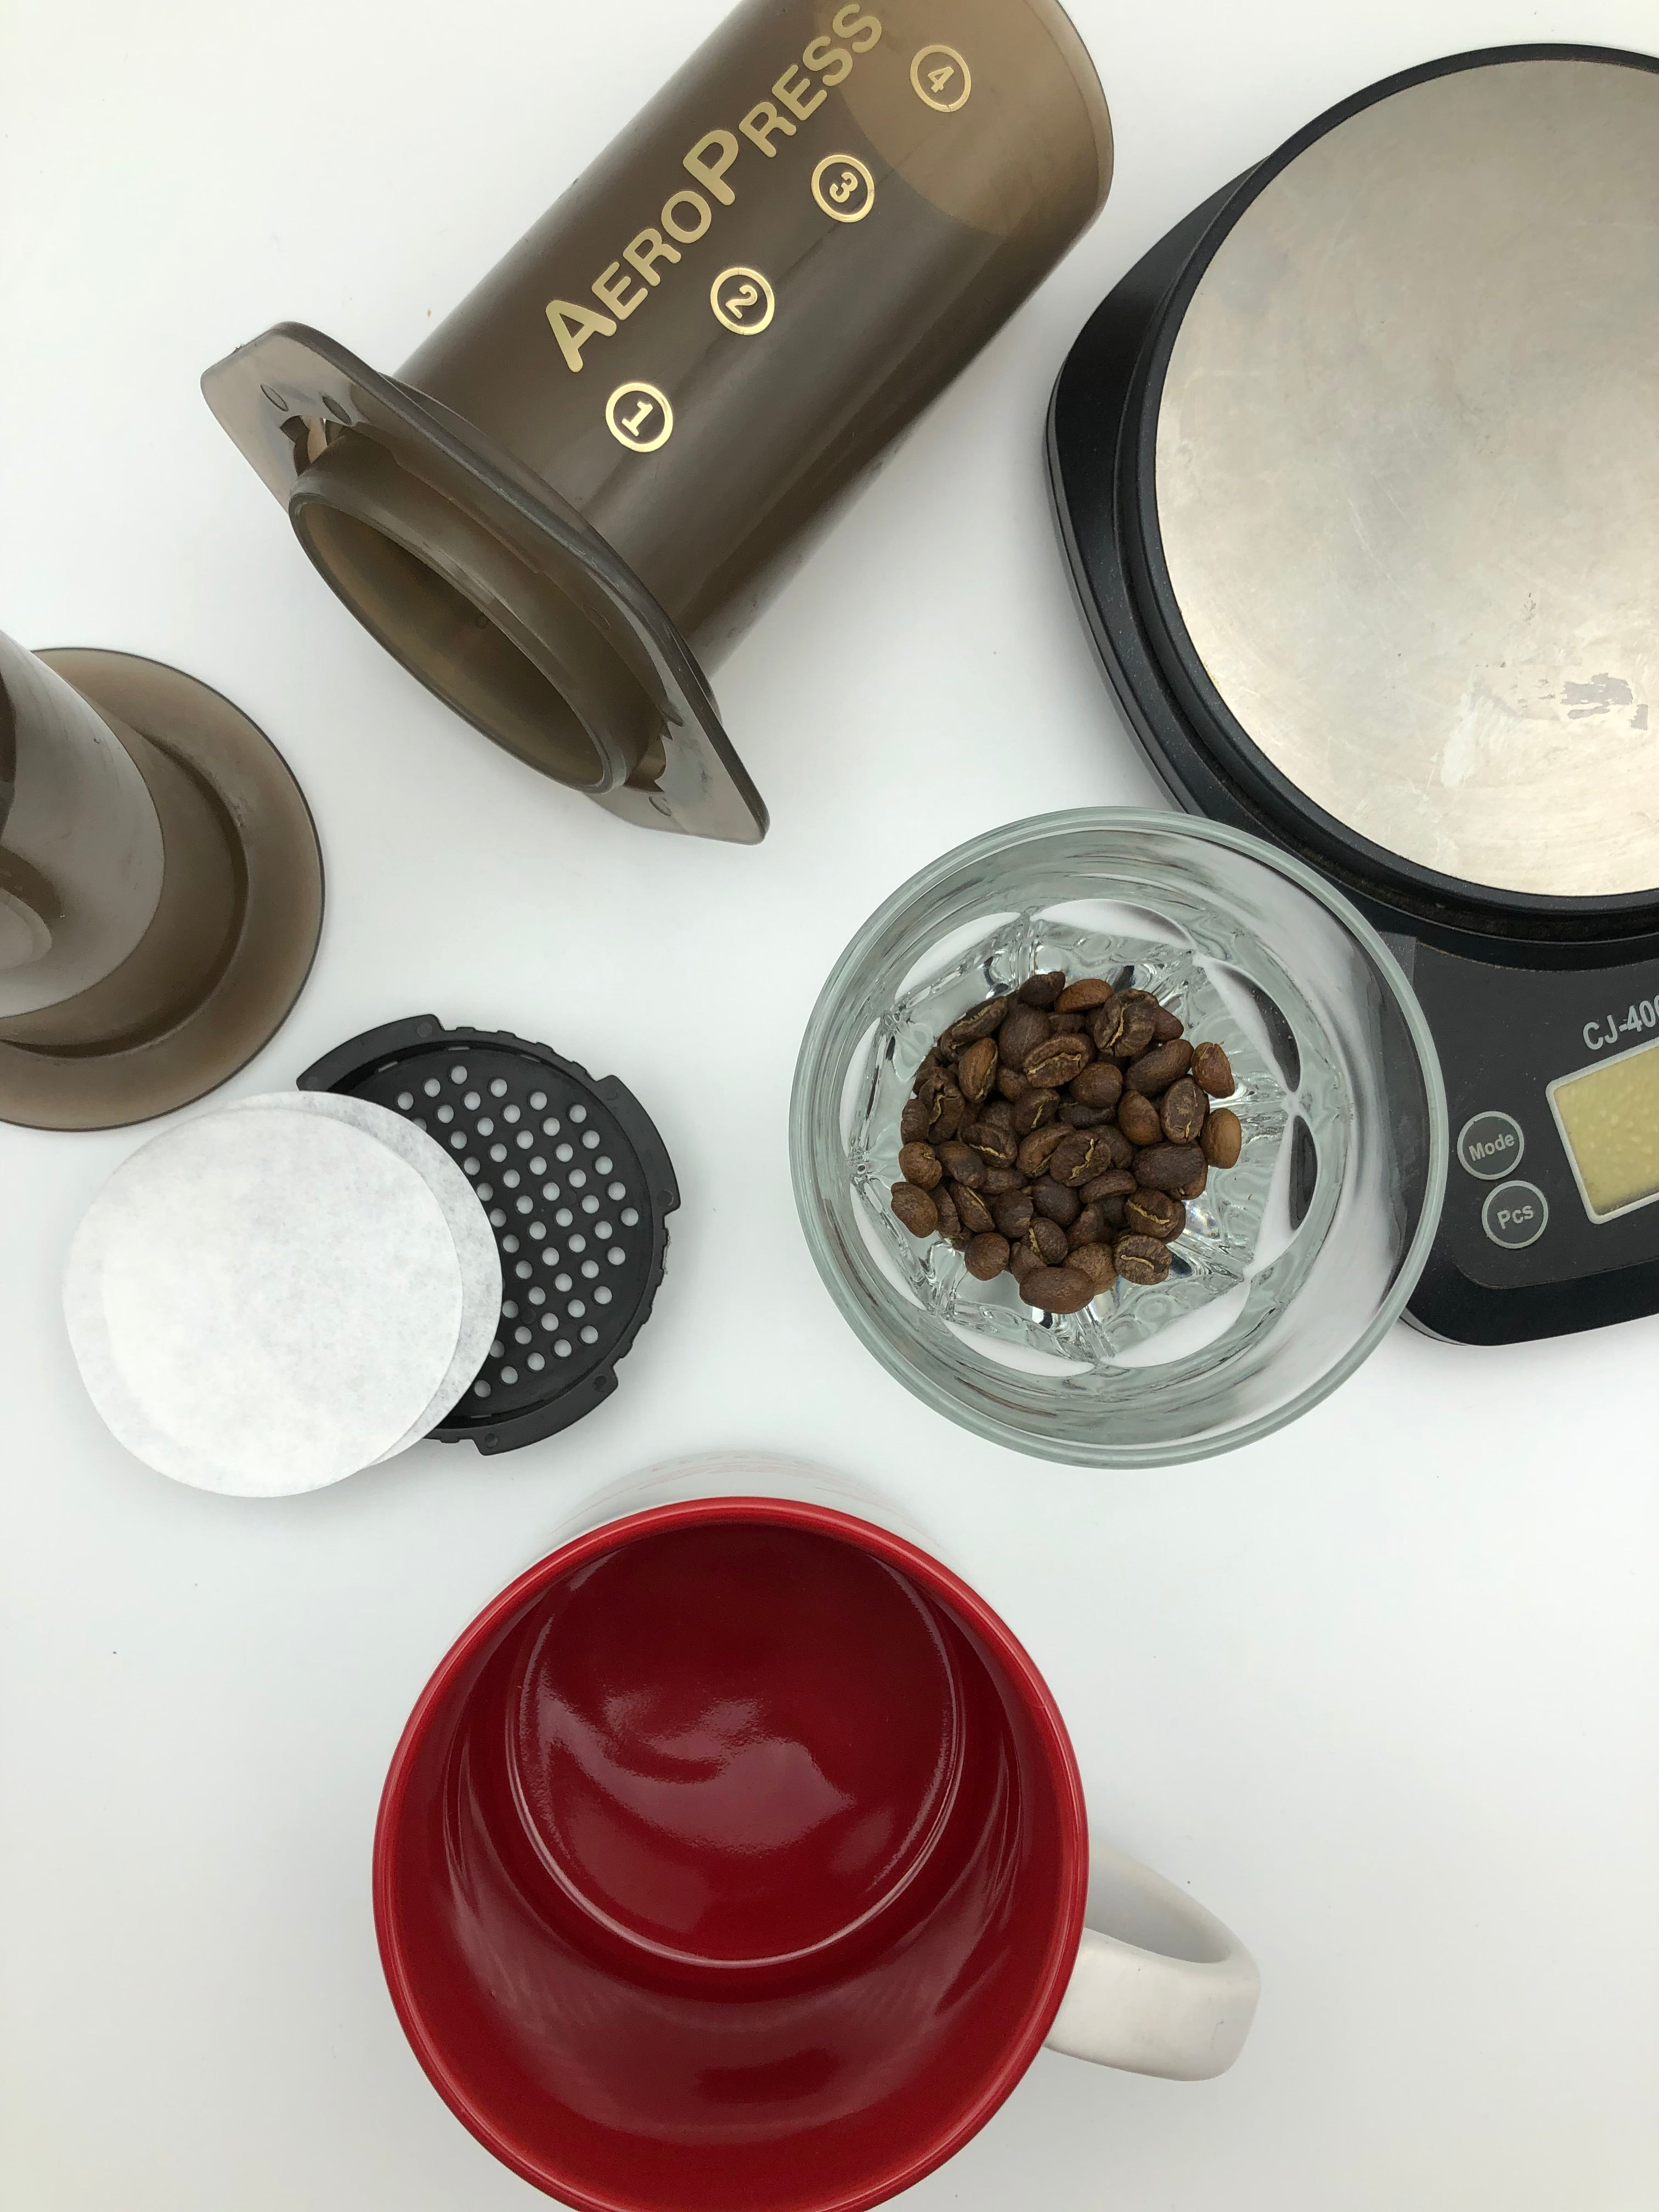 Tools needed to brew coffee in an aeropress including aeropress and filters, kettle, scale, red bear mug and Kuma Coffee